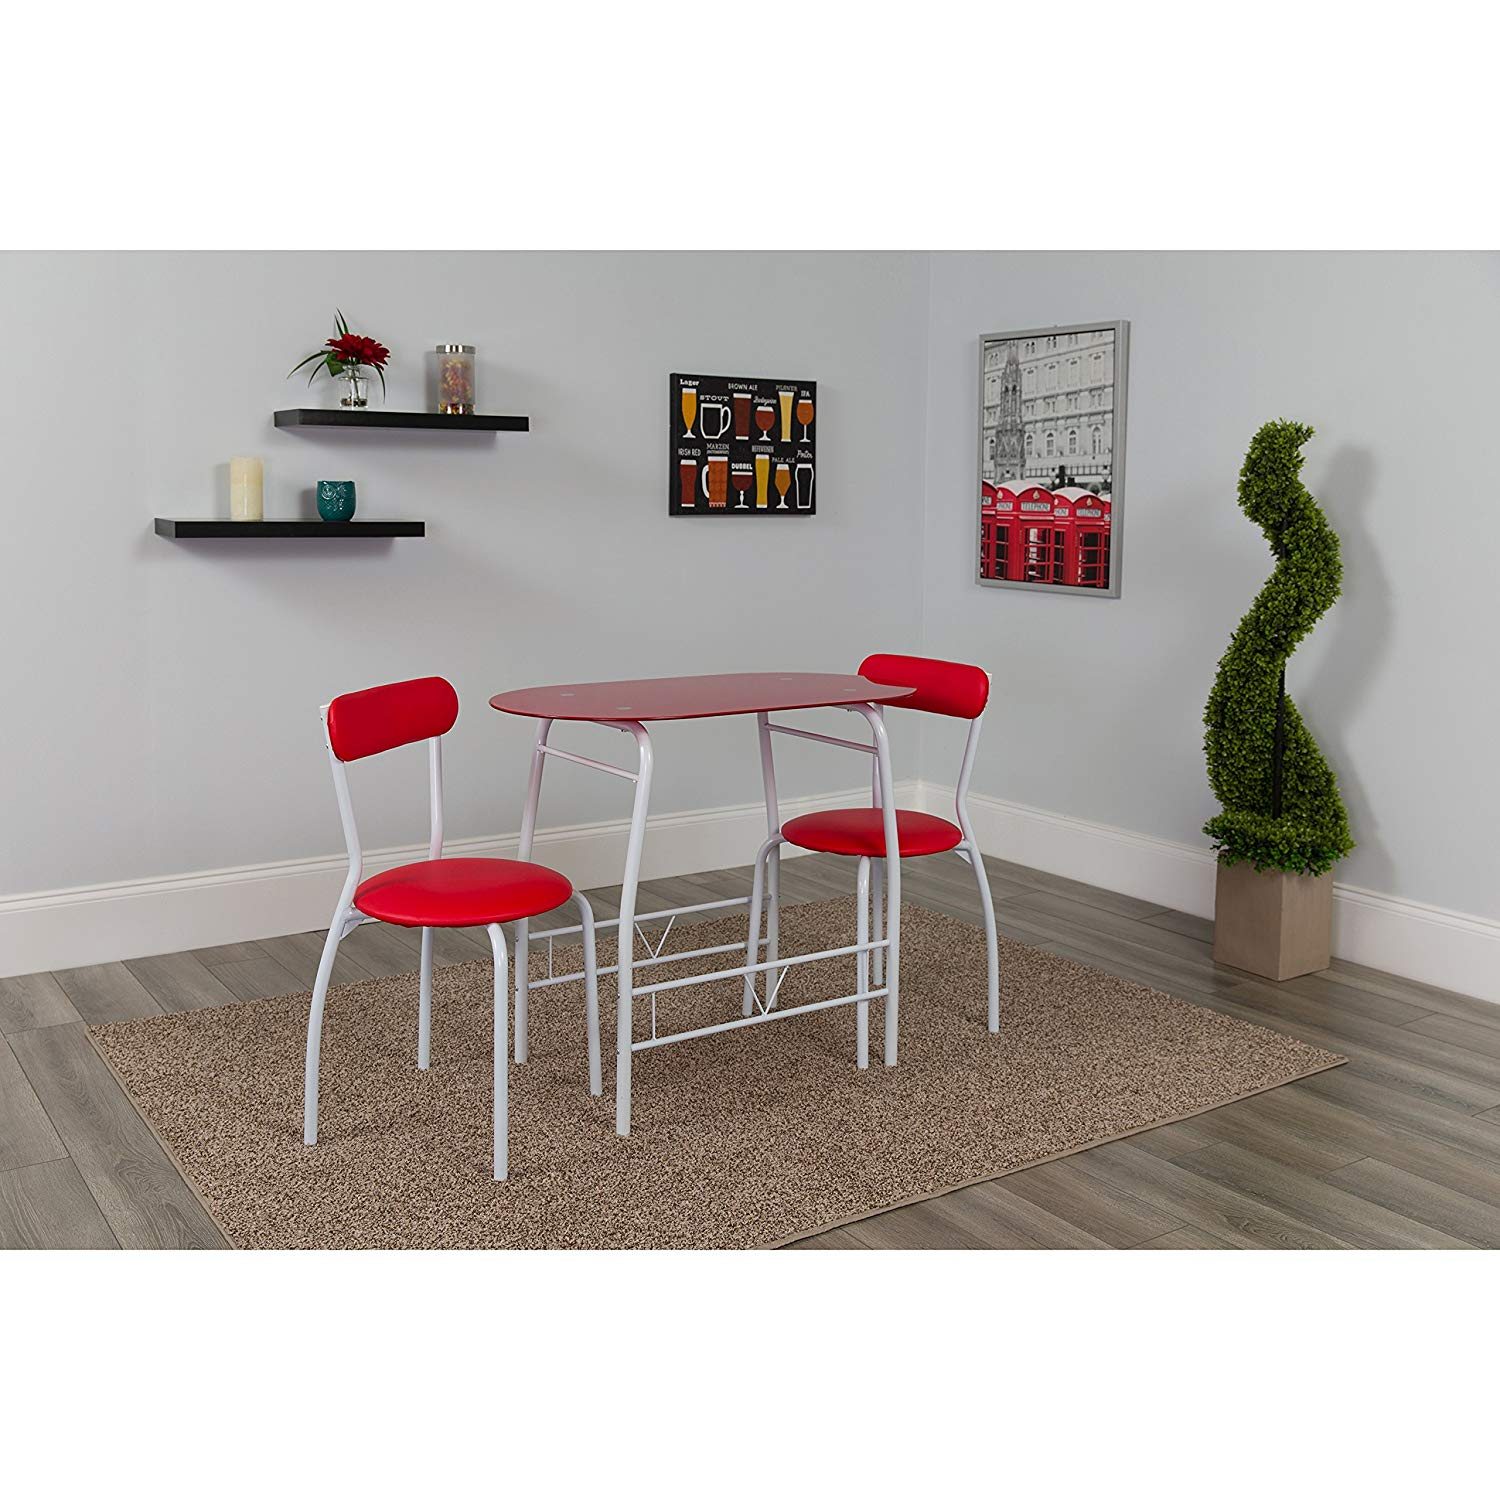 flash furniture sutton piece space saver bistro set accent chair and table with black glass top vinyl padded chairs kitchen dining ashley chaise farmhouse nightstand wine rack red